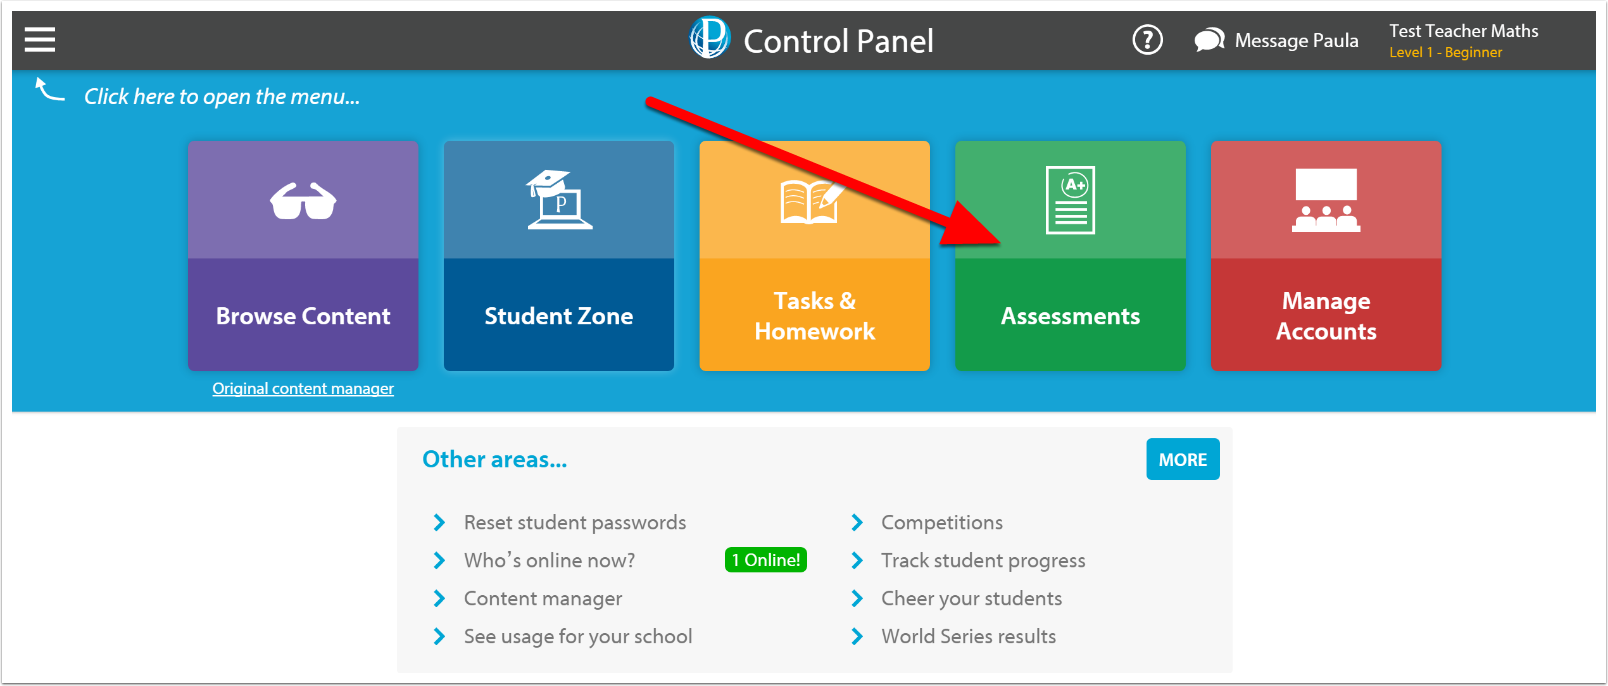 Go to www.educationperfect.com/controlpanel and login.